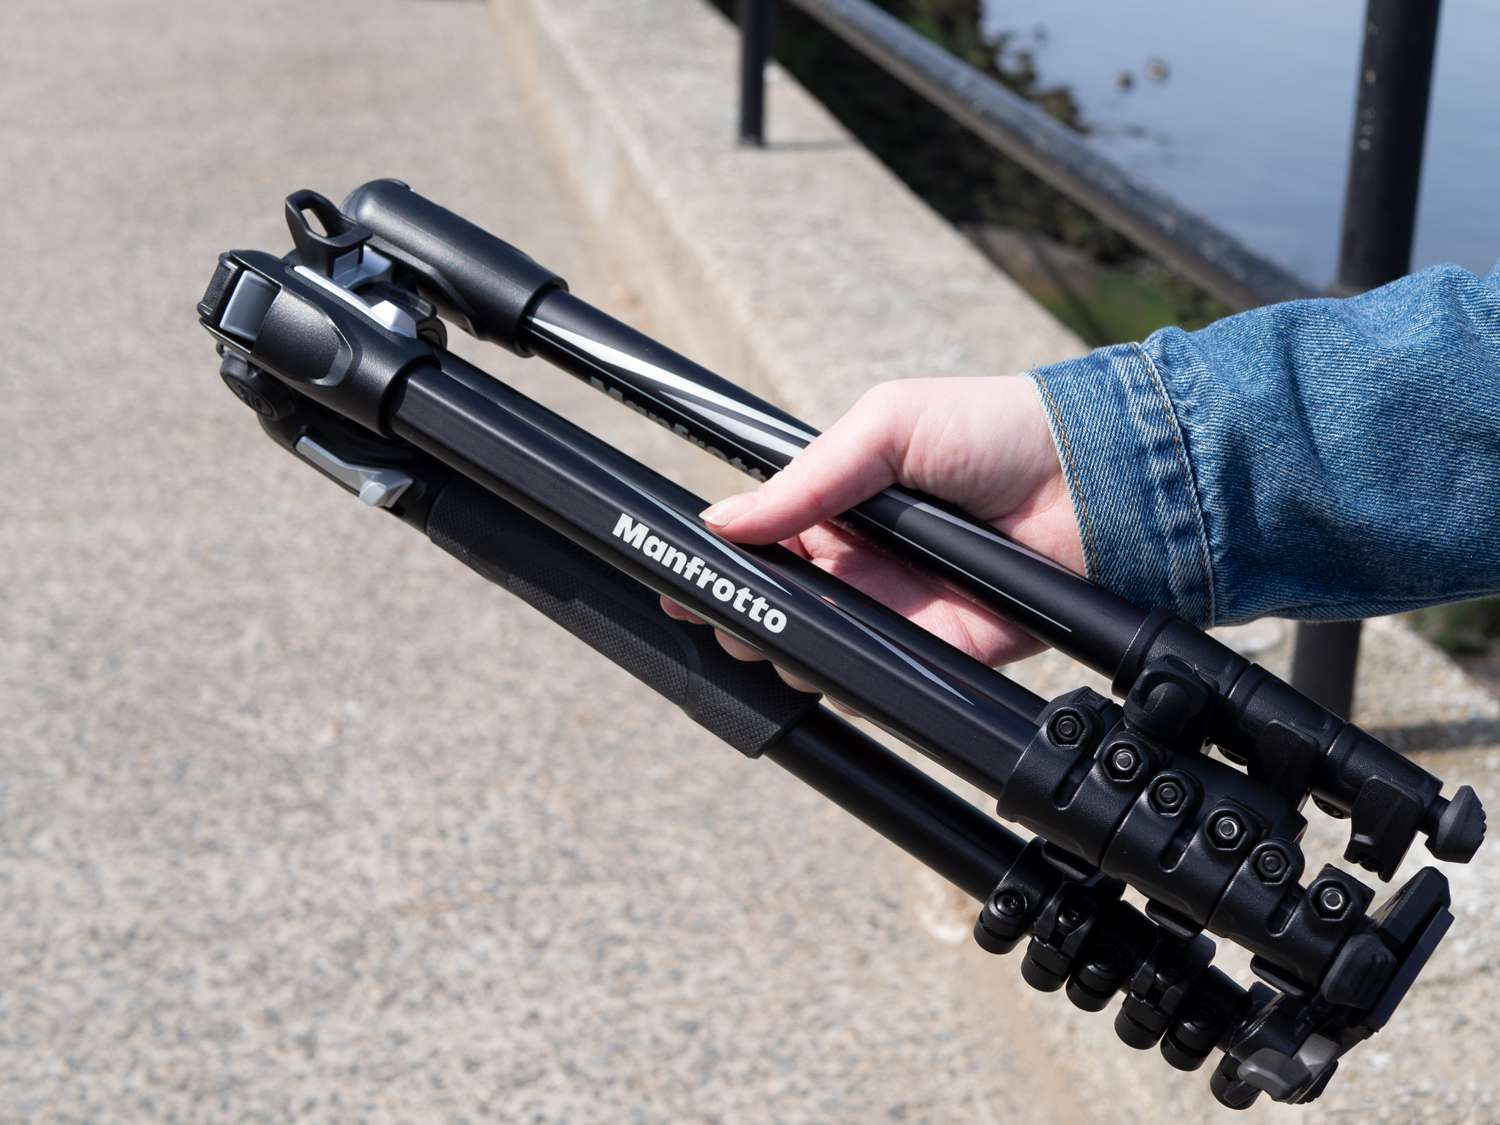 Manfrotto Befree Aluminum Travel Tripod: High Quality Means A High Price